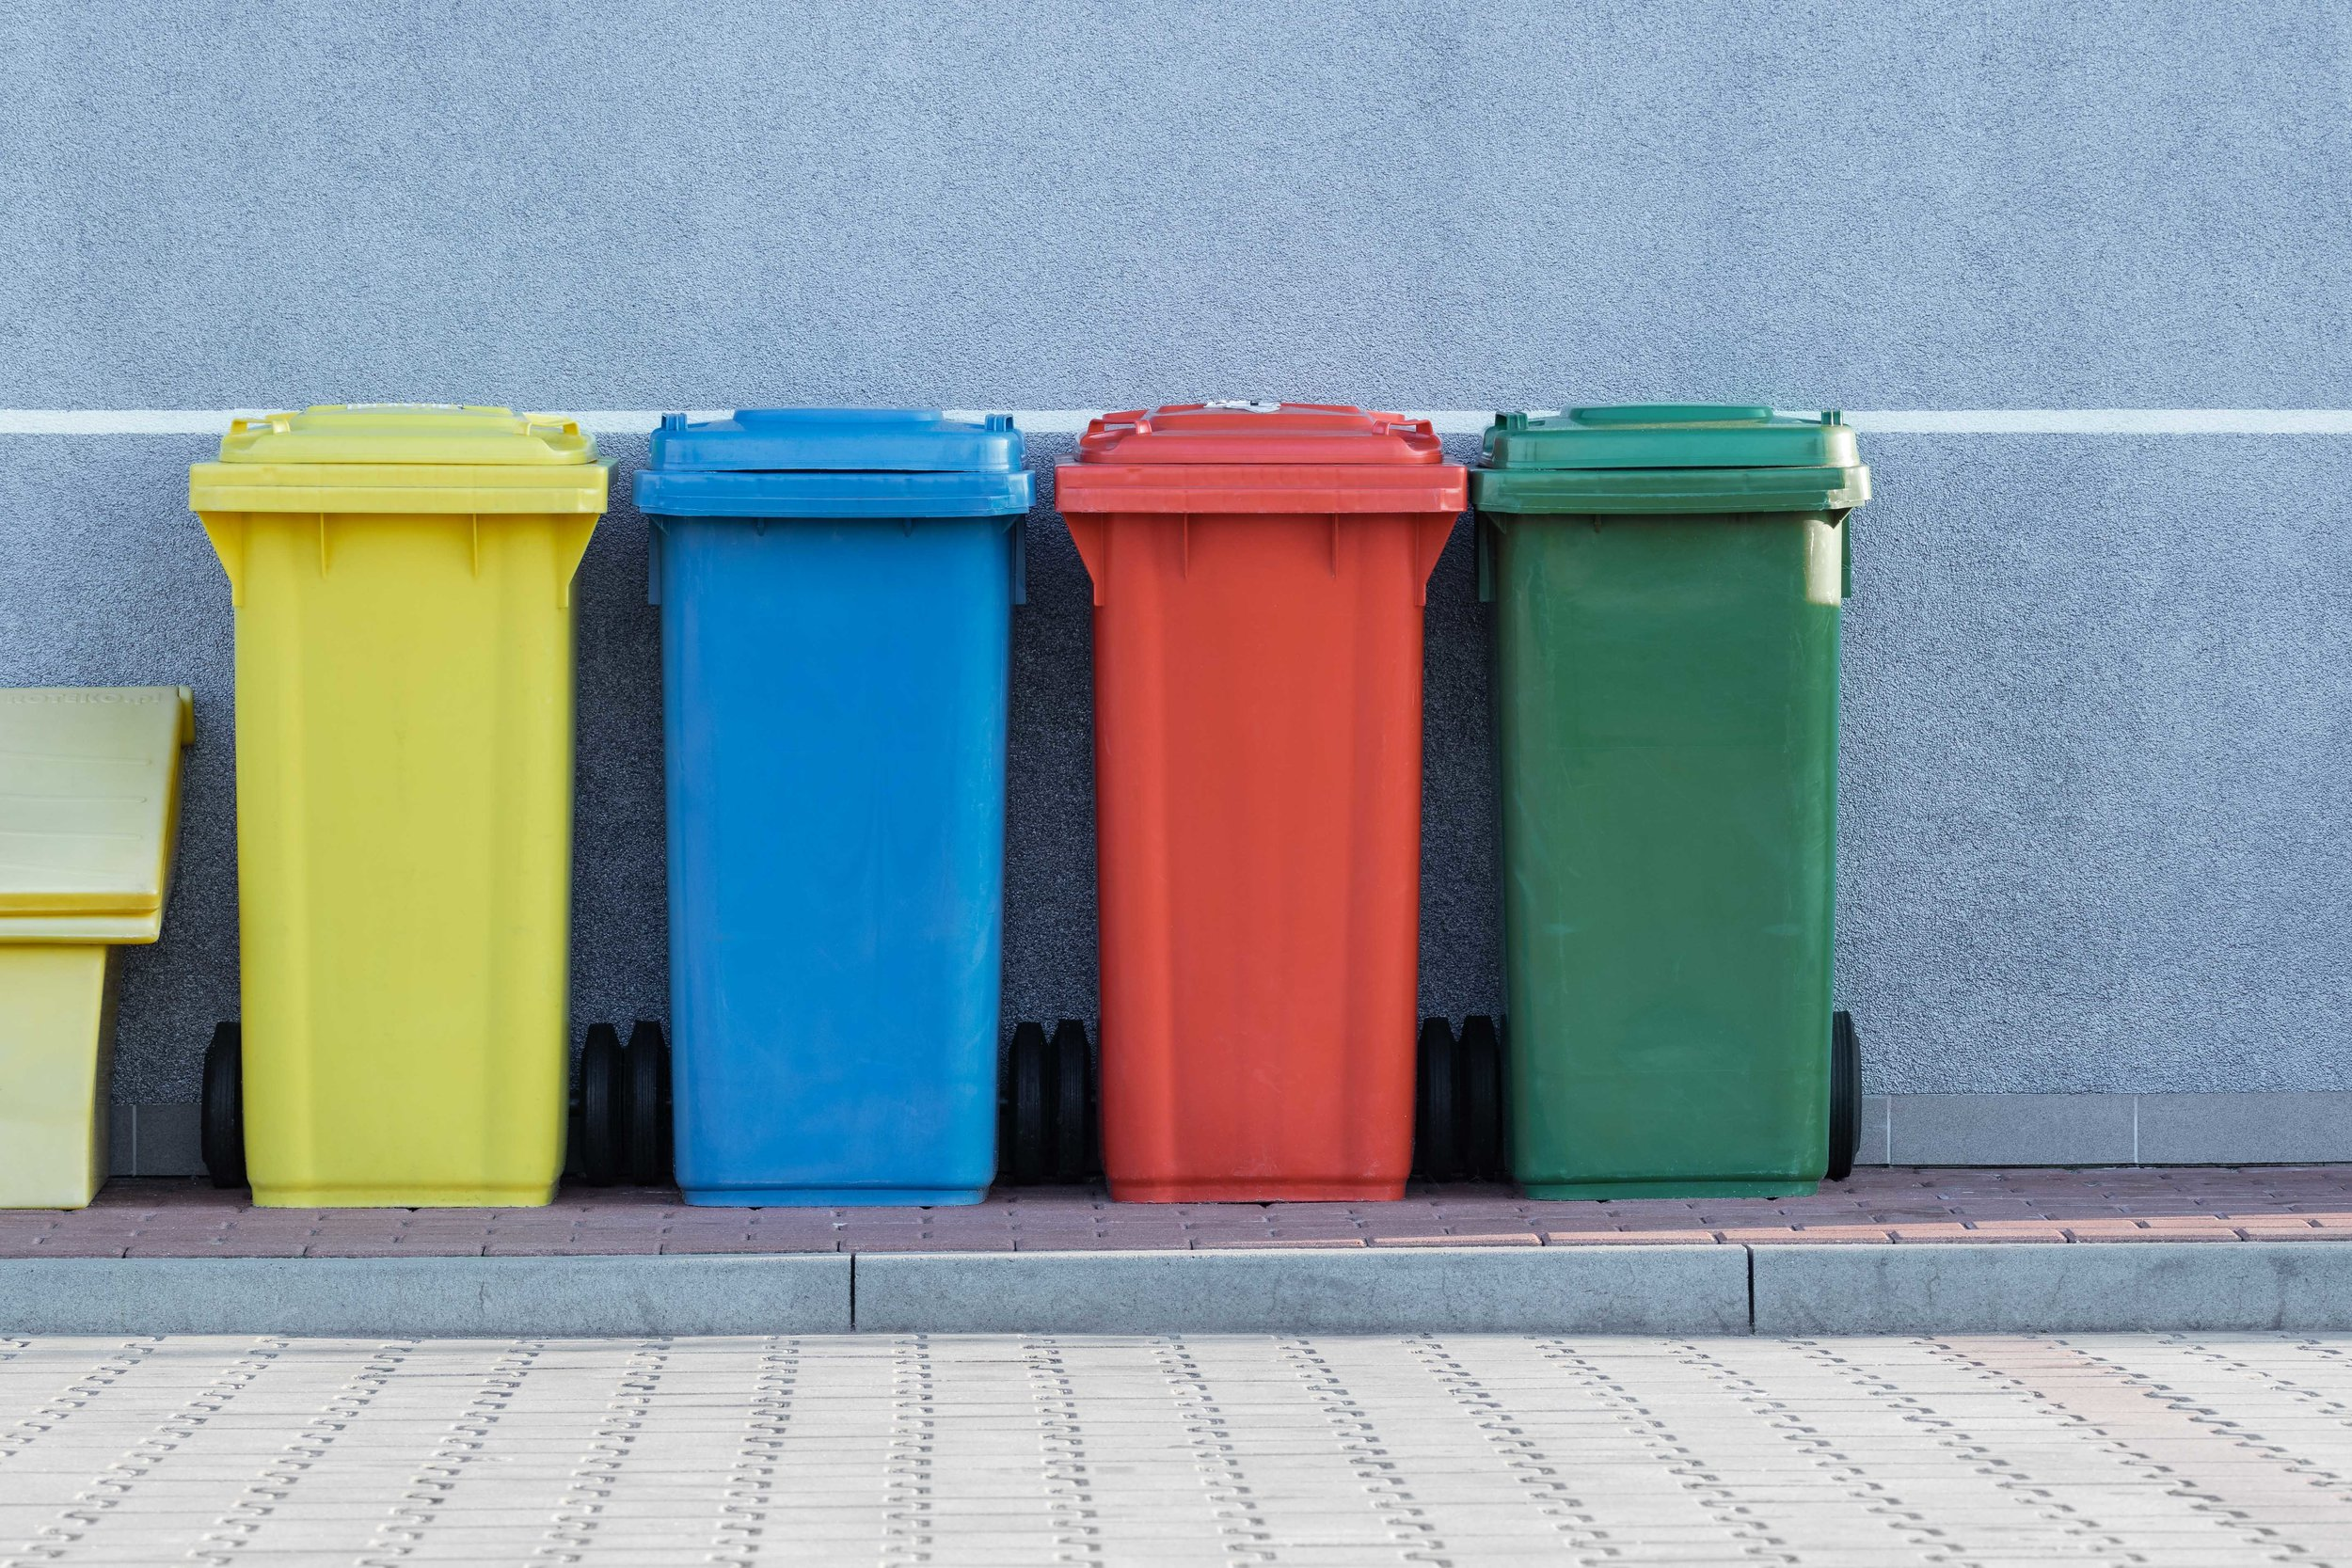 Leave it to us - Household WasteCommercial Waste Contractors100% RecycledFully Licensed & InsuredTrading Standard Approved